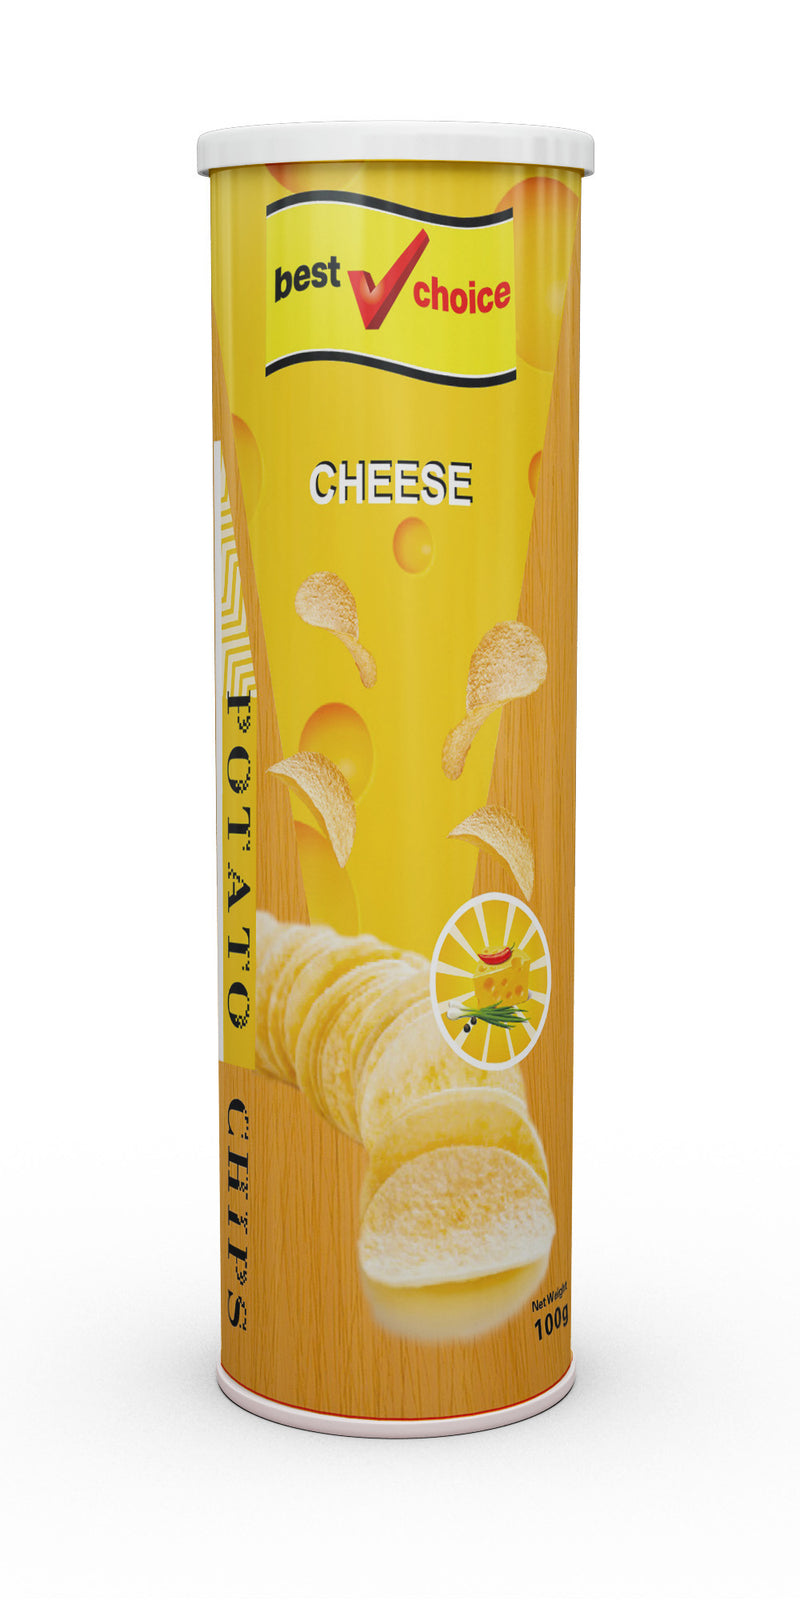 Best Choice Potato Chips 24 x 100g Cheese Flavour